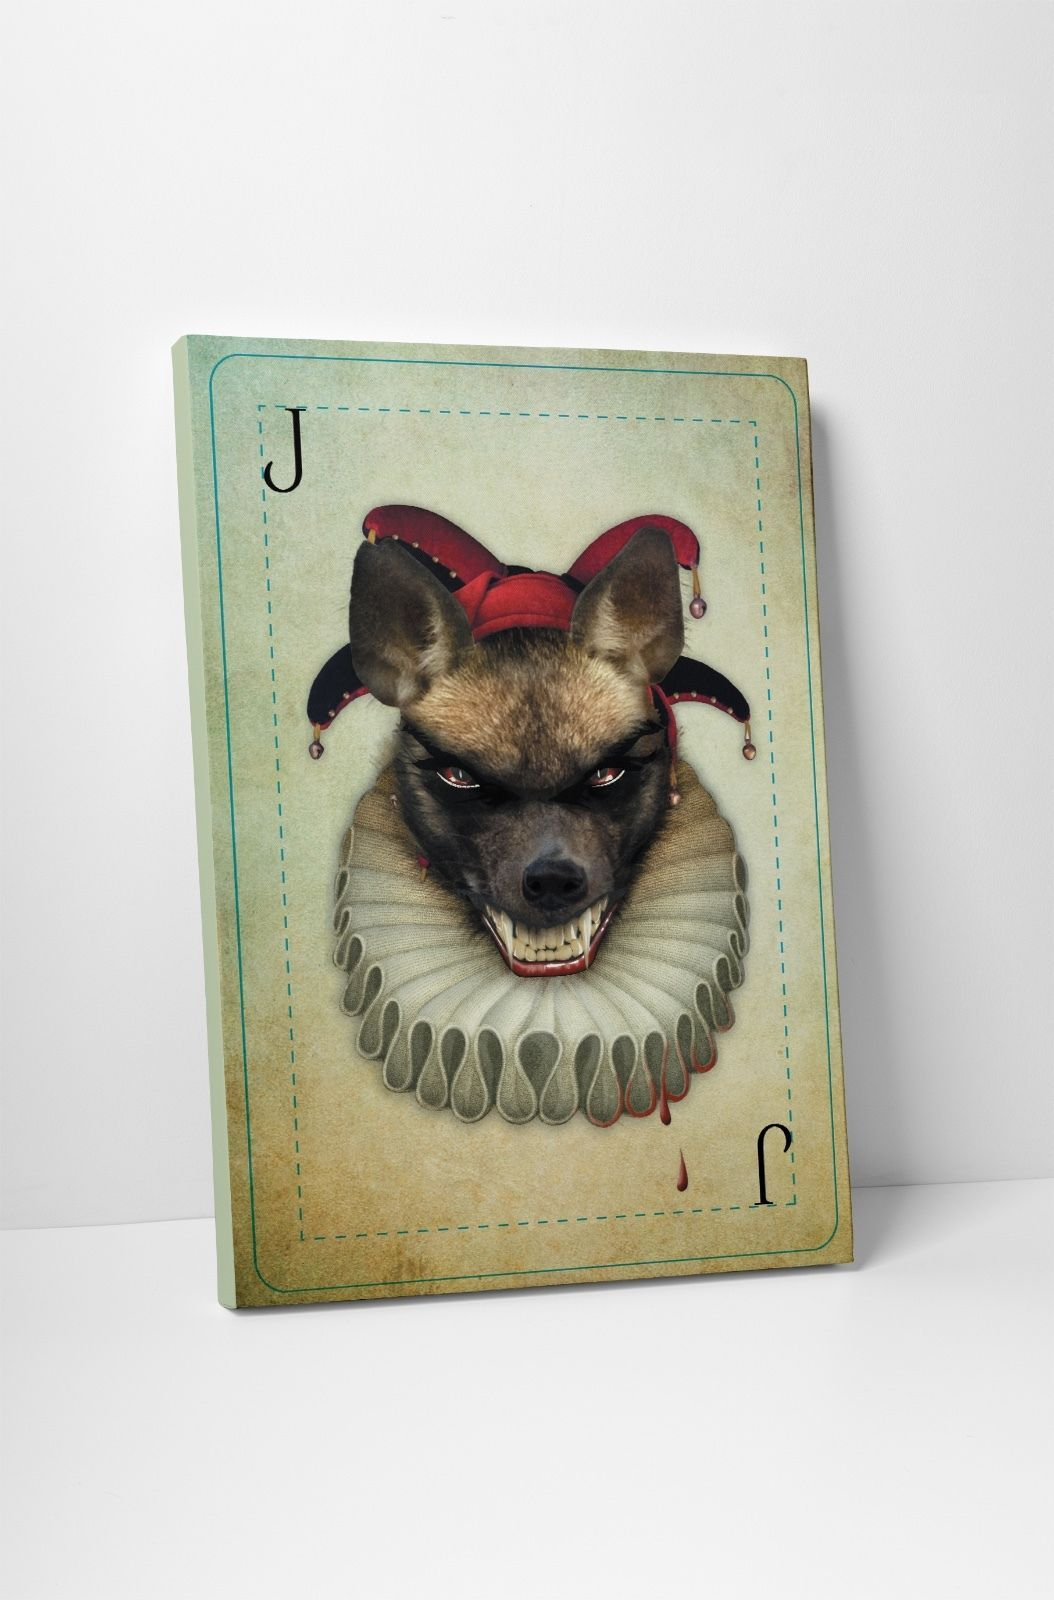 Joker II Vintage Playing Card Gallery Wrapped Canvas Print - $44.50 - $59.35